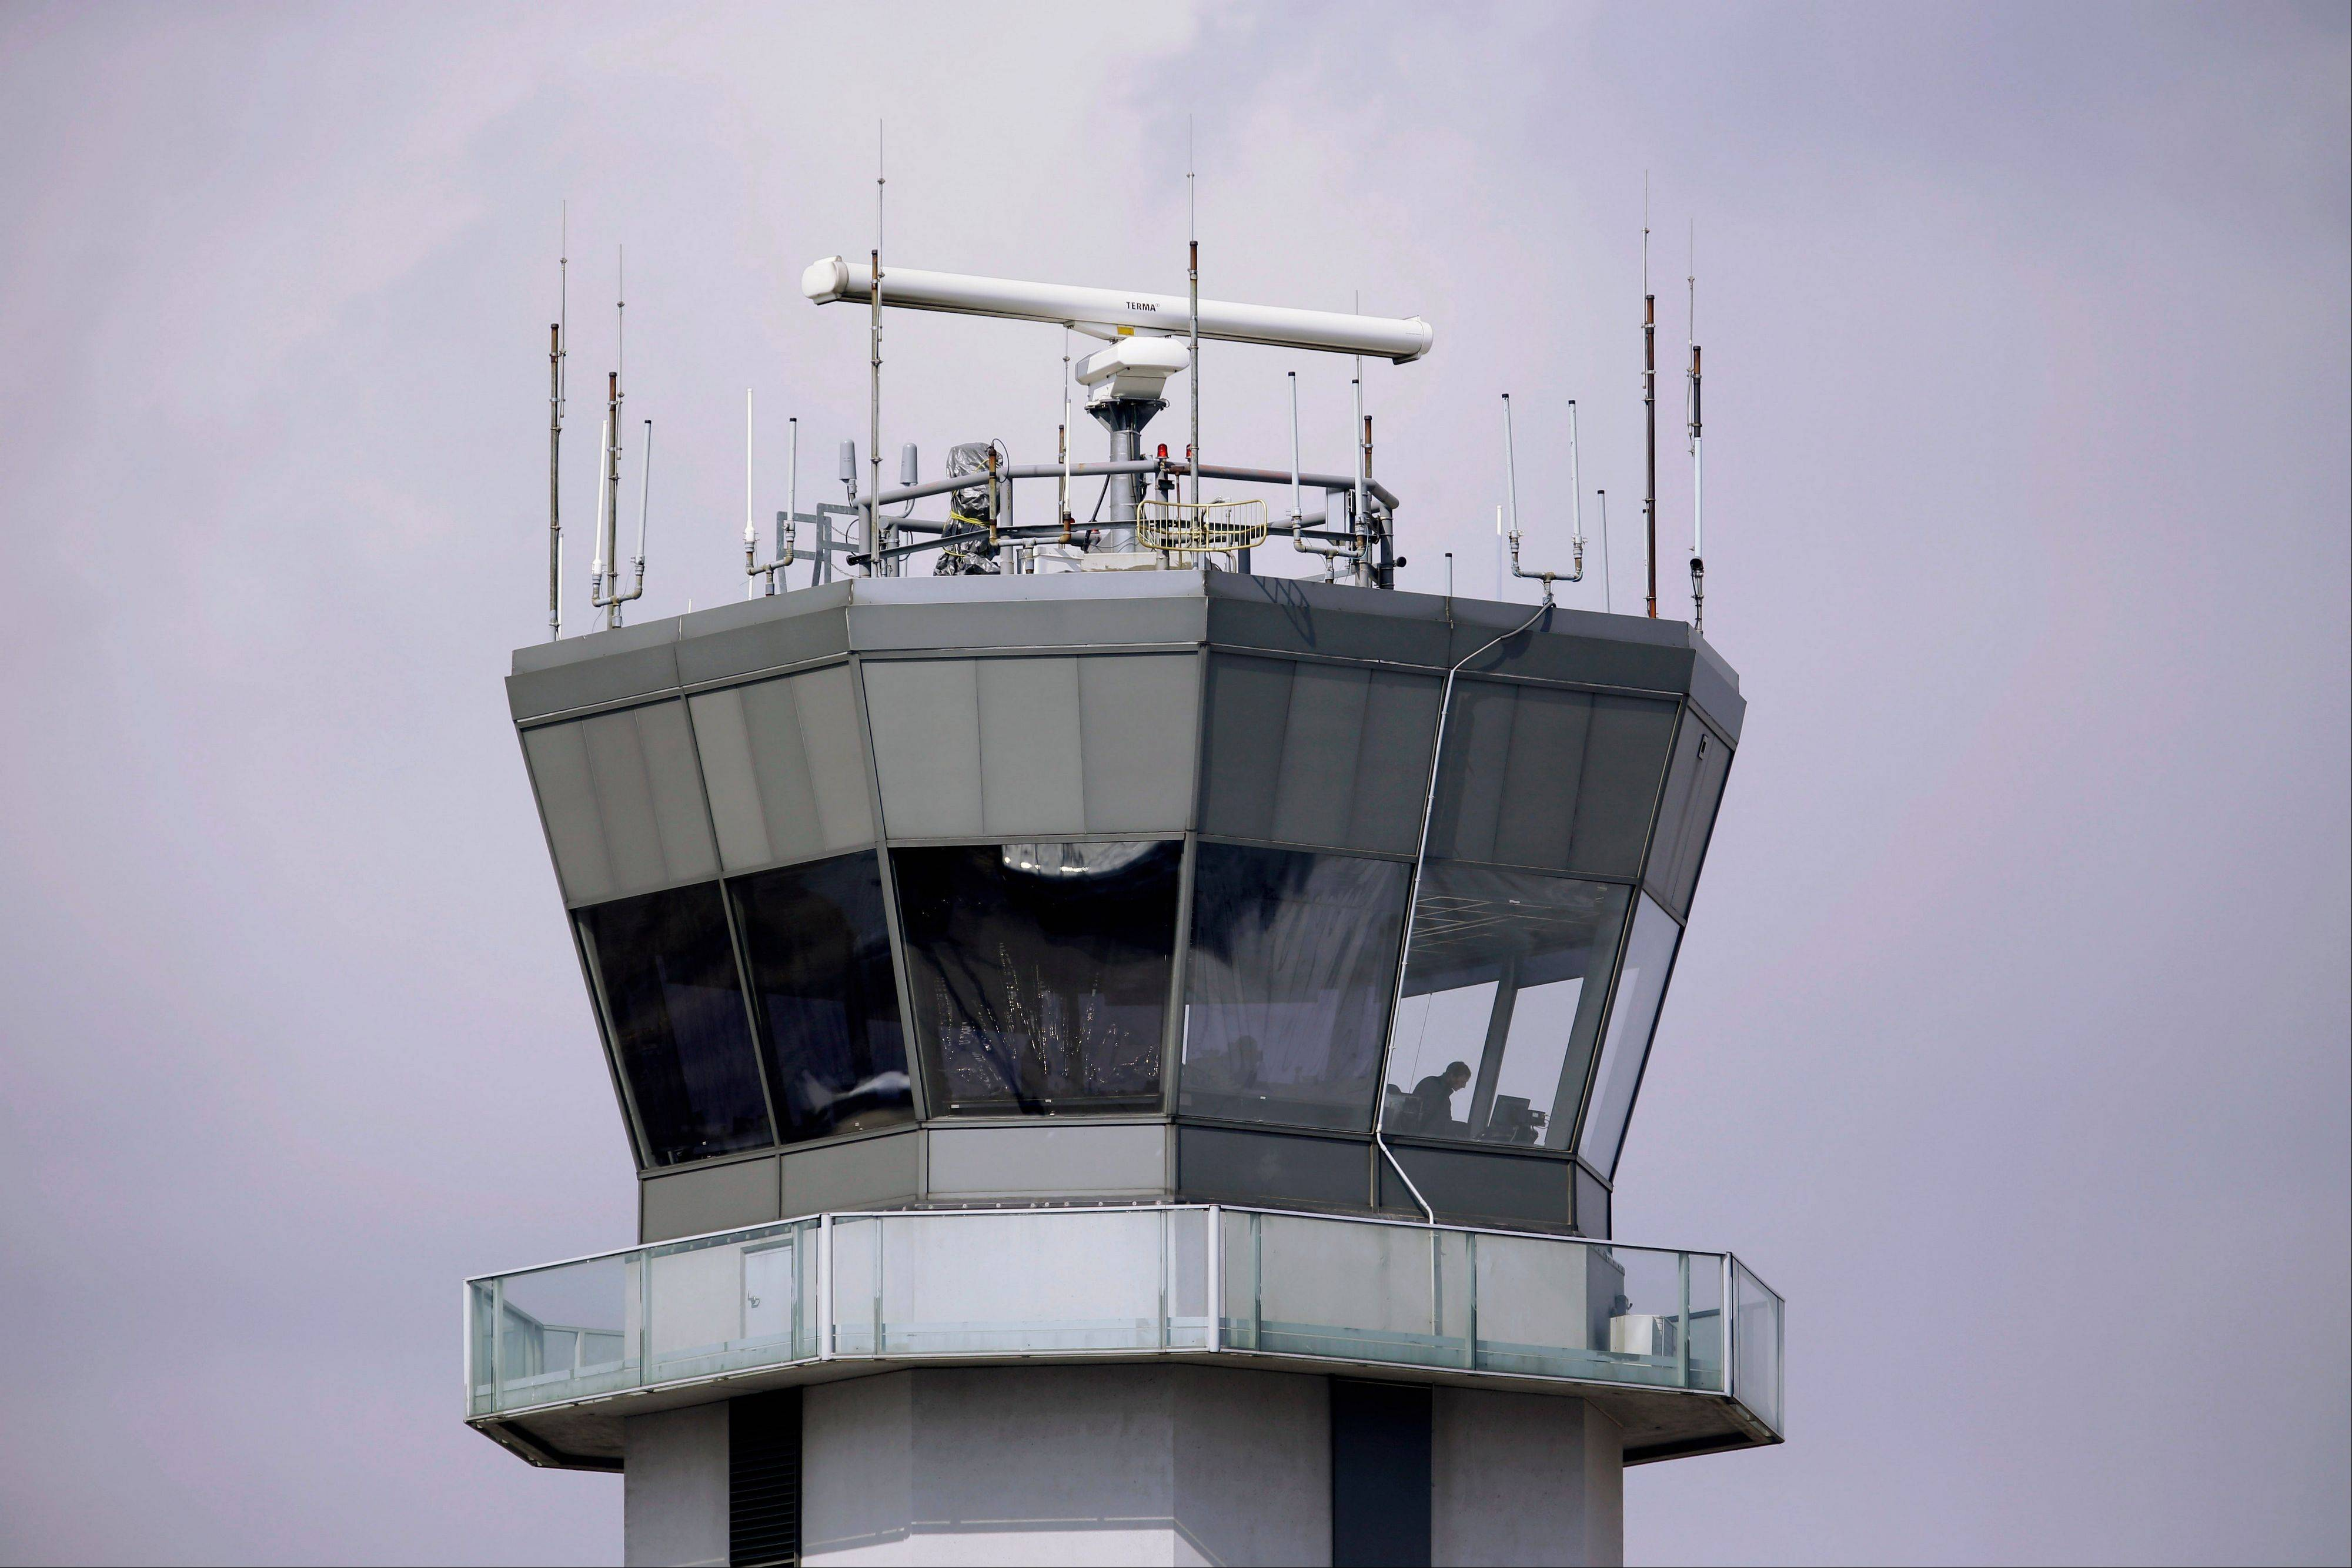 Air traffic tower closures will strip safety net